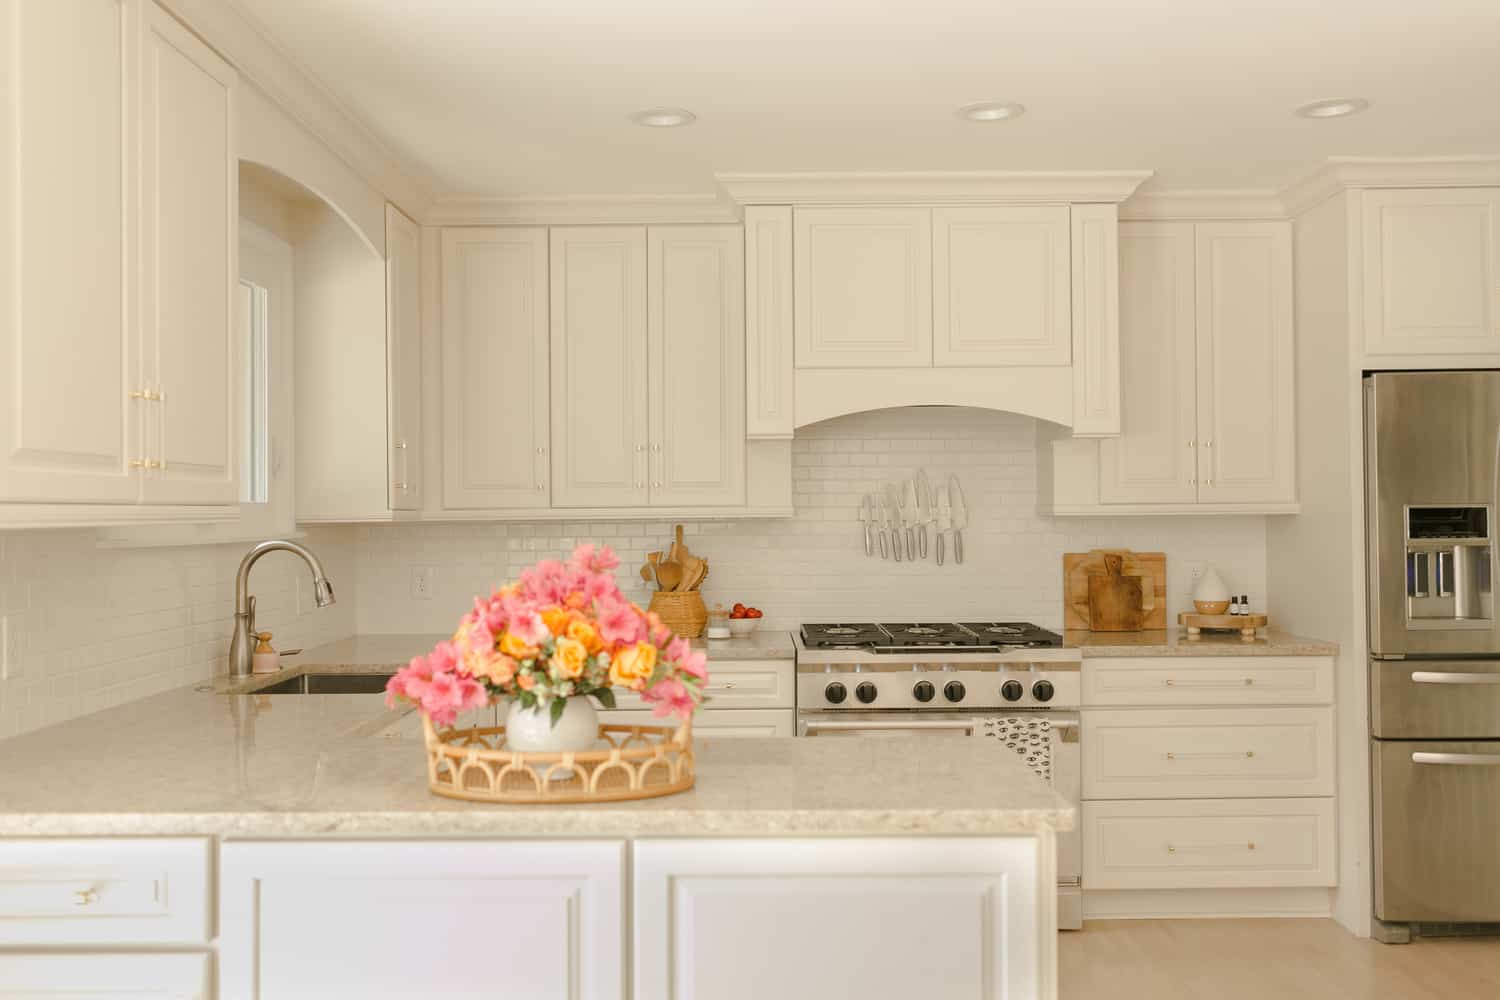 A beginner's guide to kitchen tile picking